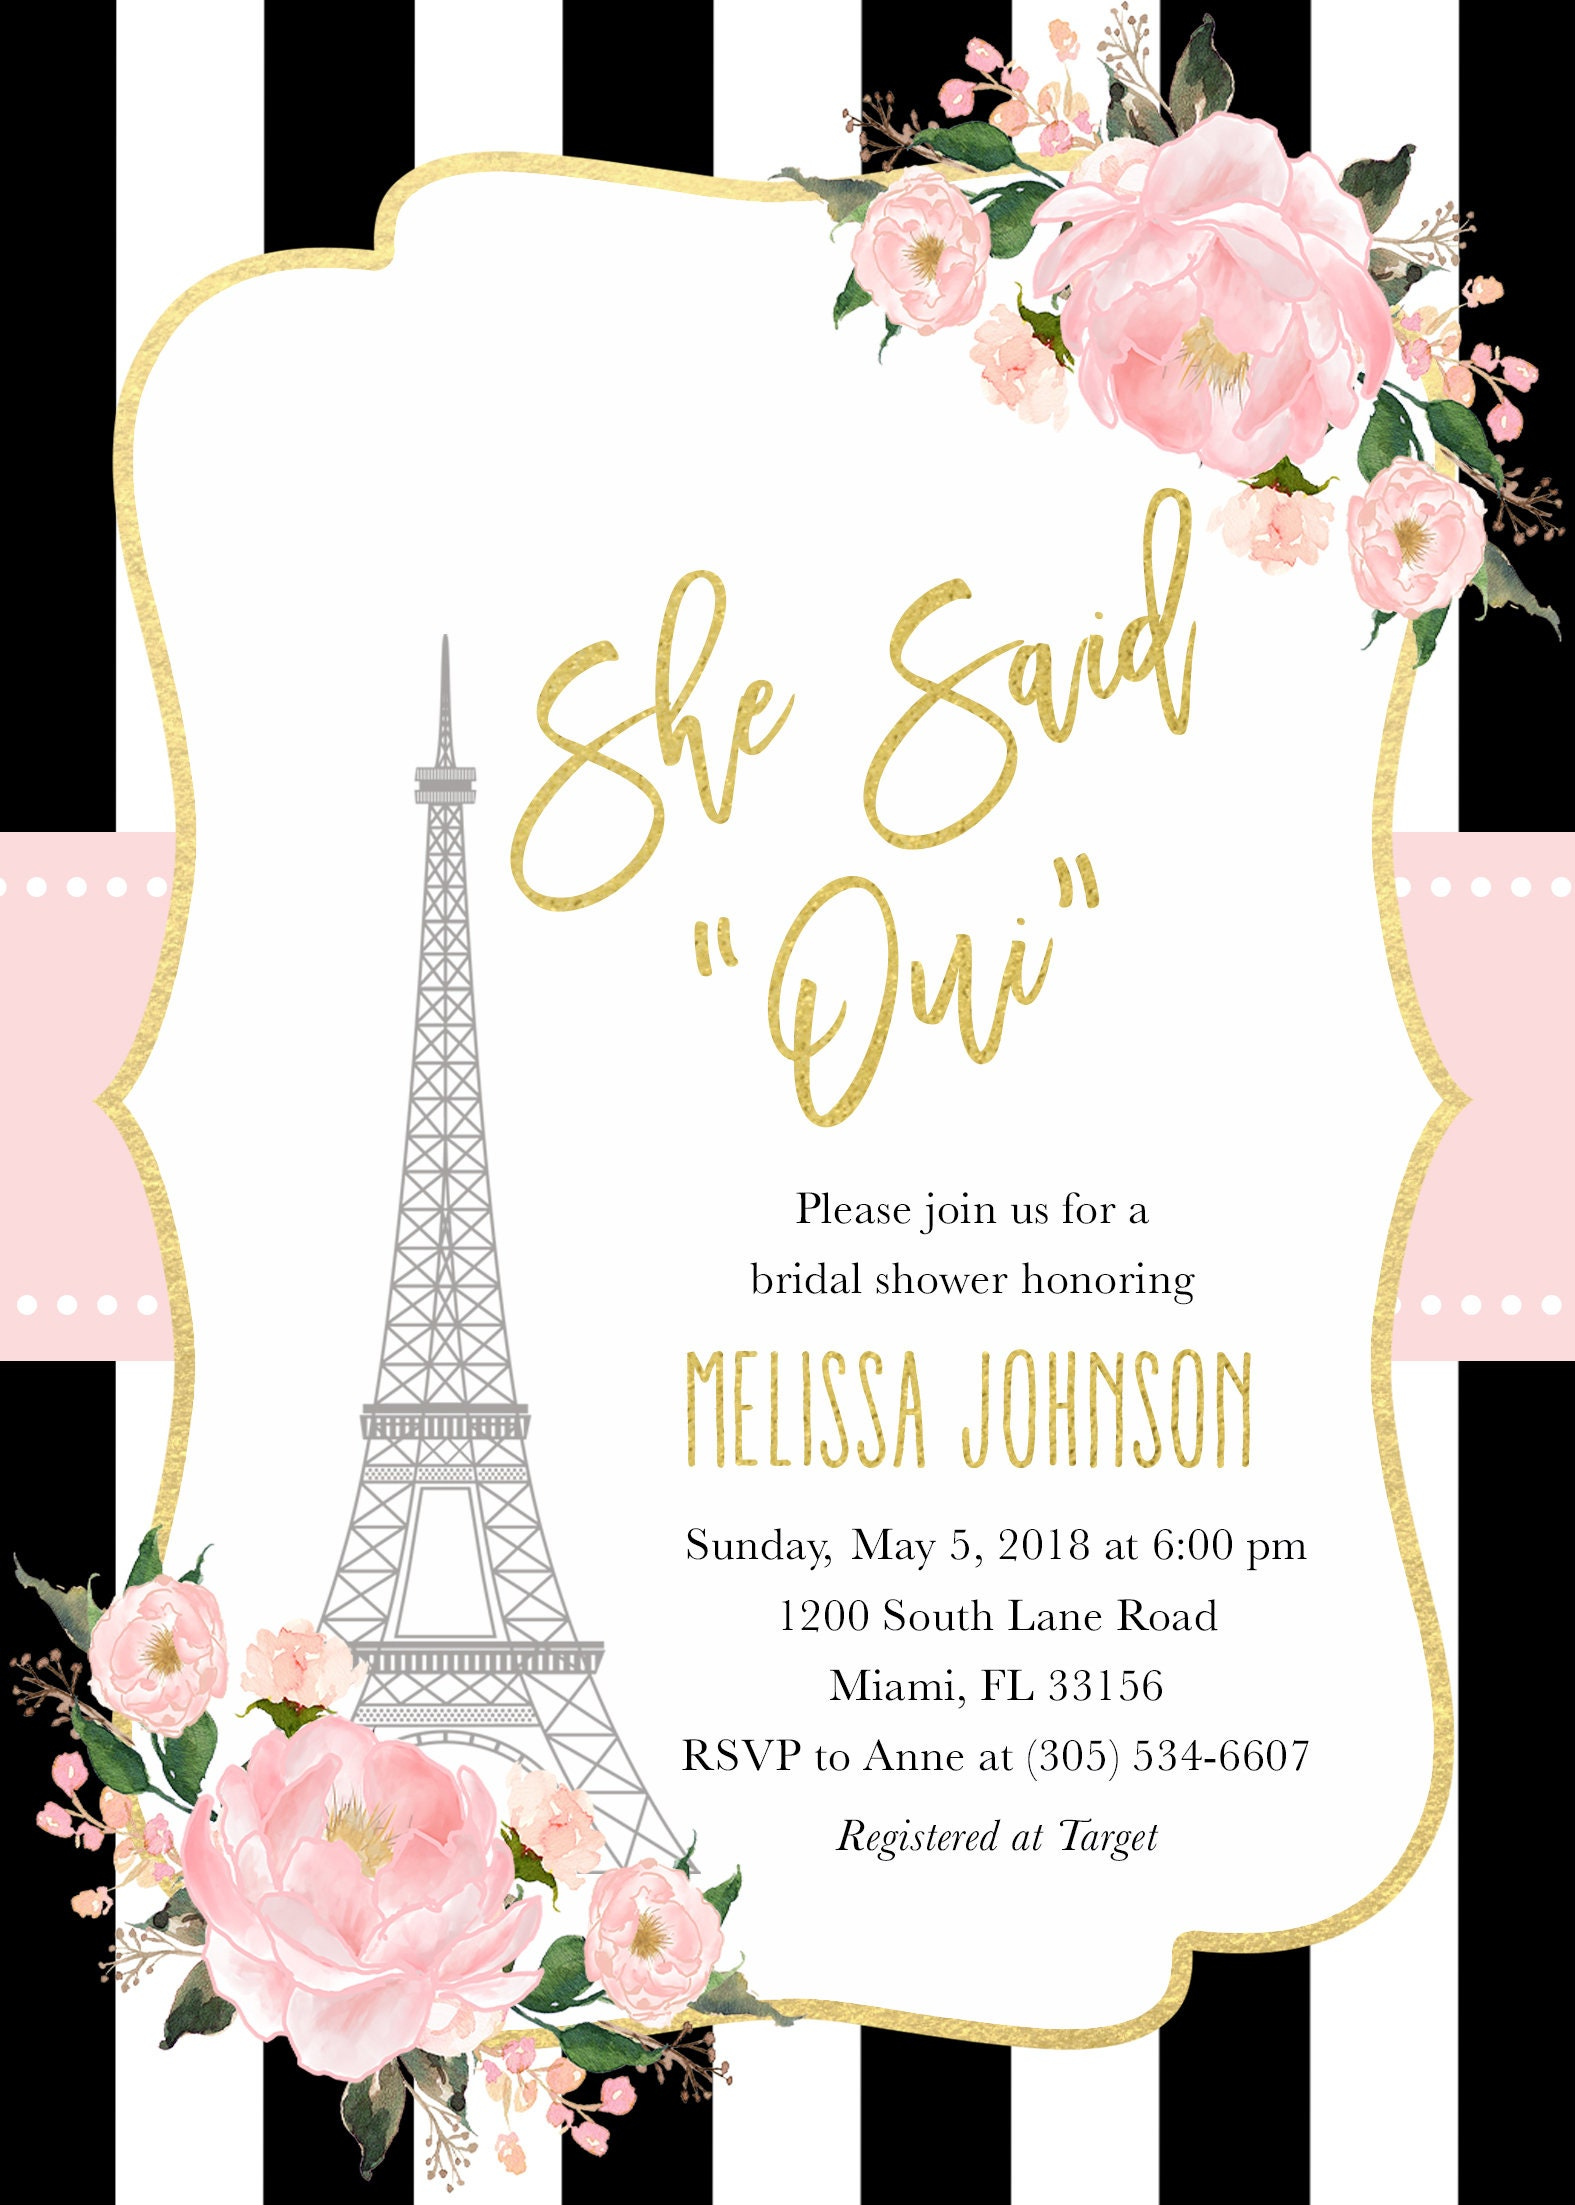 paris bridal shower invitation french bridal shower invitation eiffel tower bridal shower invitation she said oui parisian invite